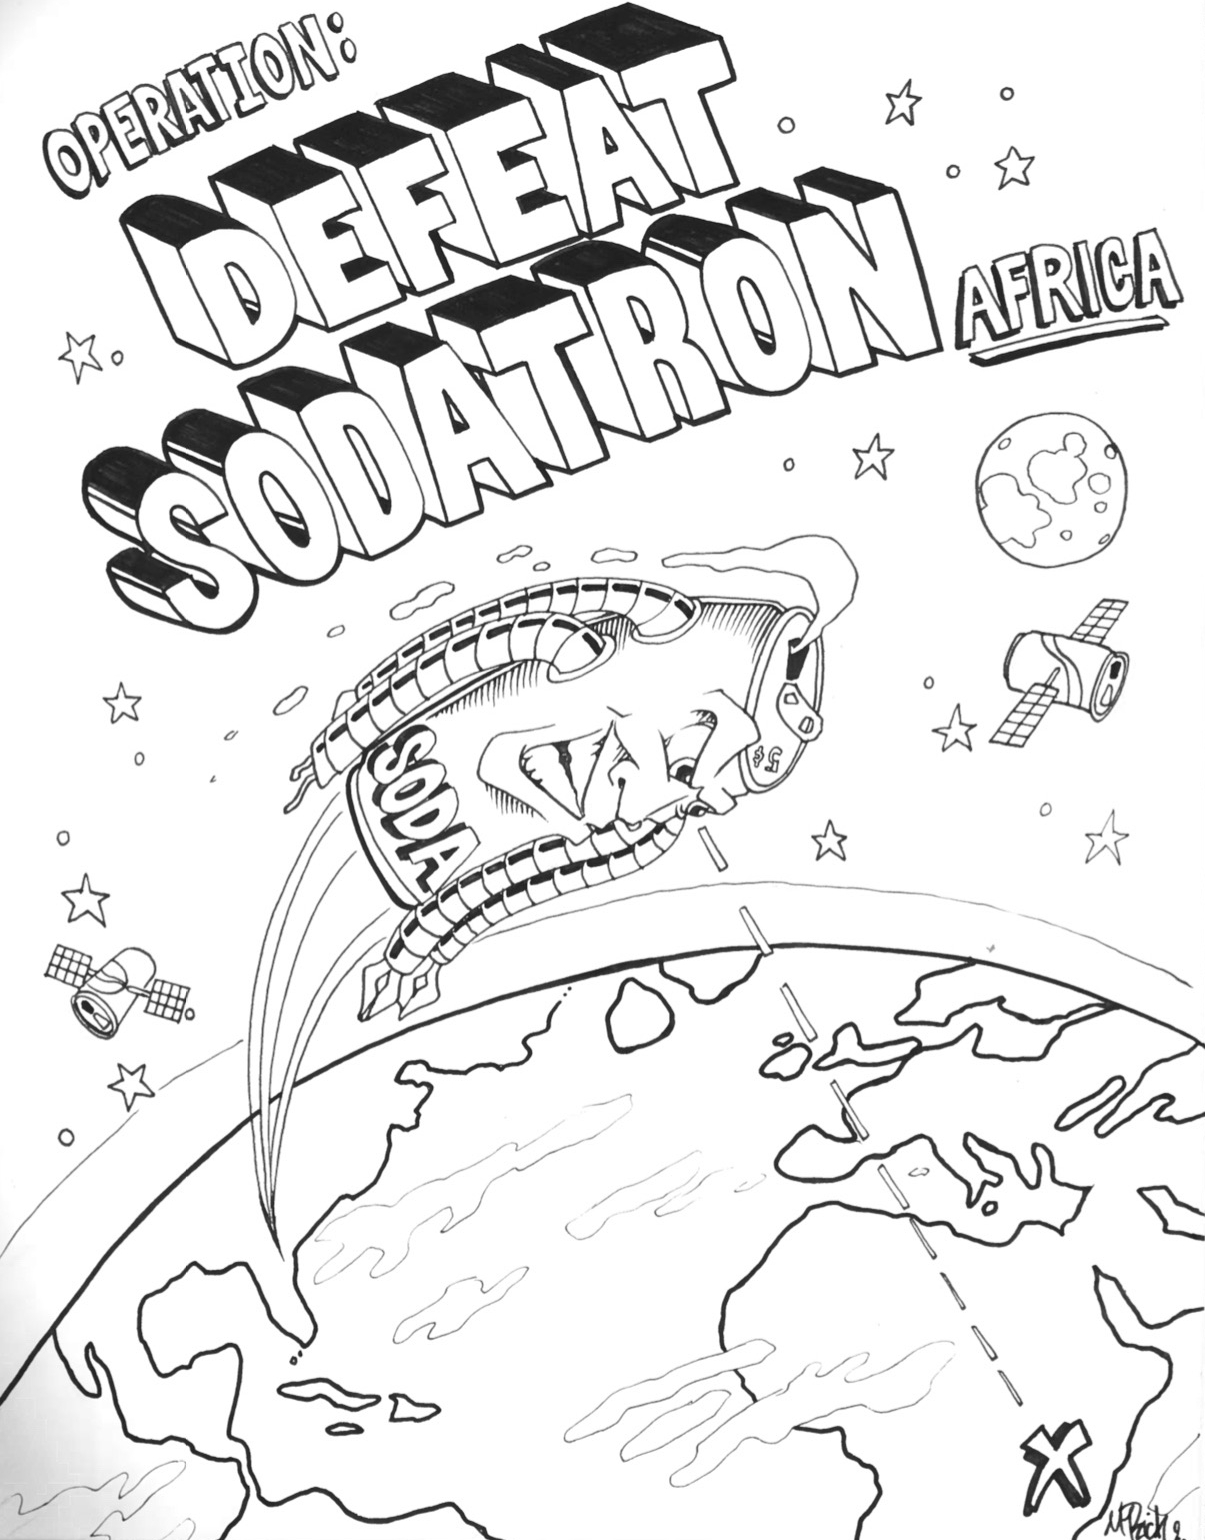 SODATRON sets his sights on Africa with his robotic tentacles of greed ready to pump kids full of sugary poison. Draft comic cover by Mike Rich Design.